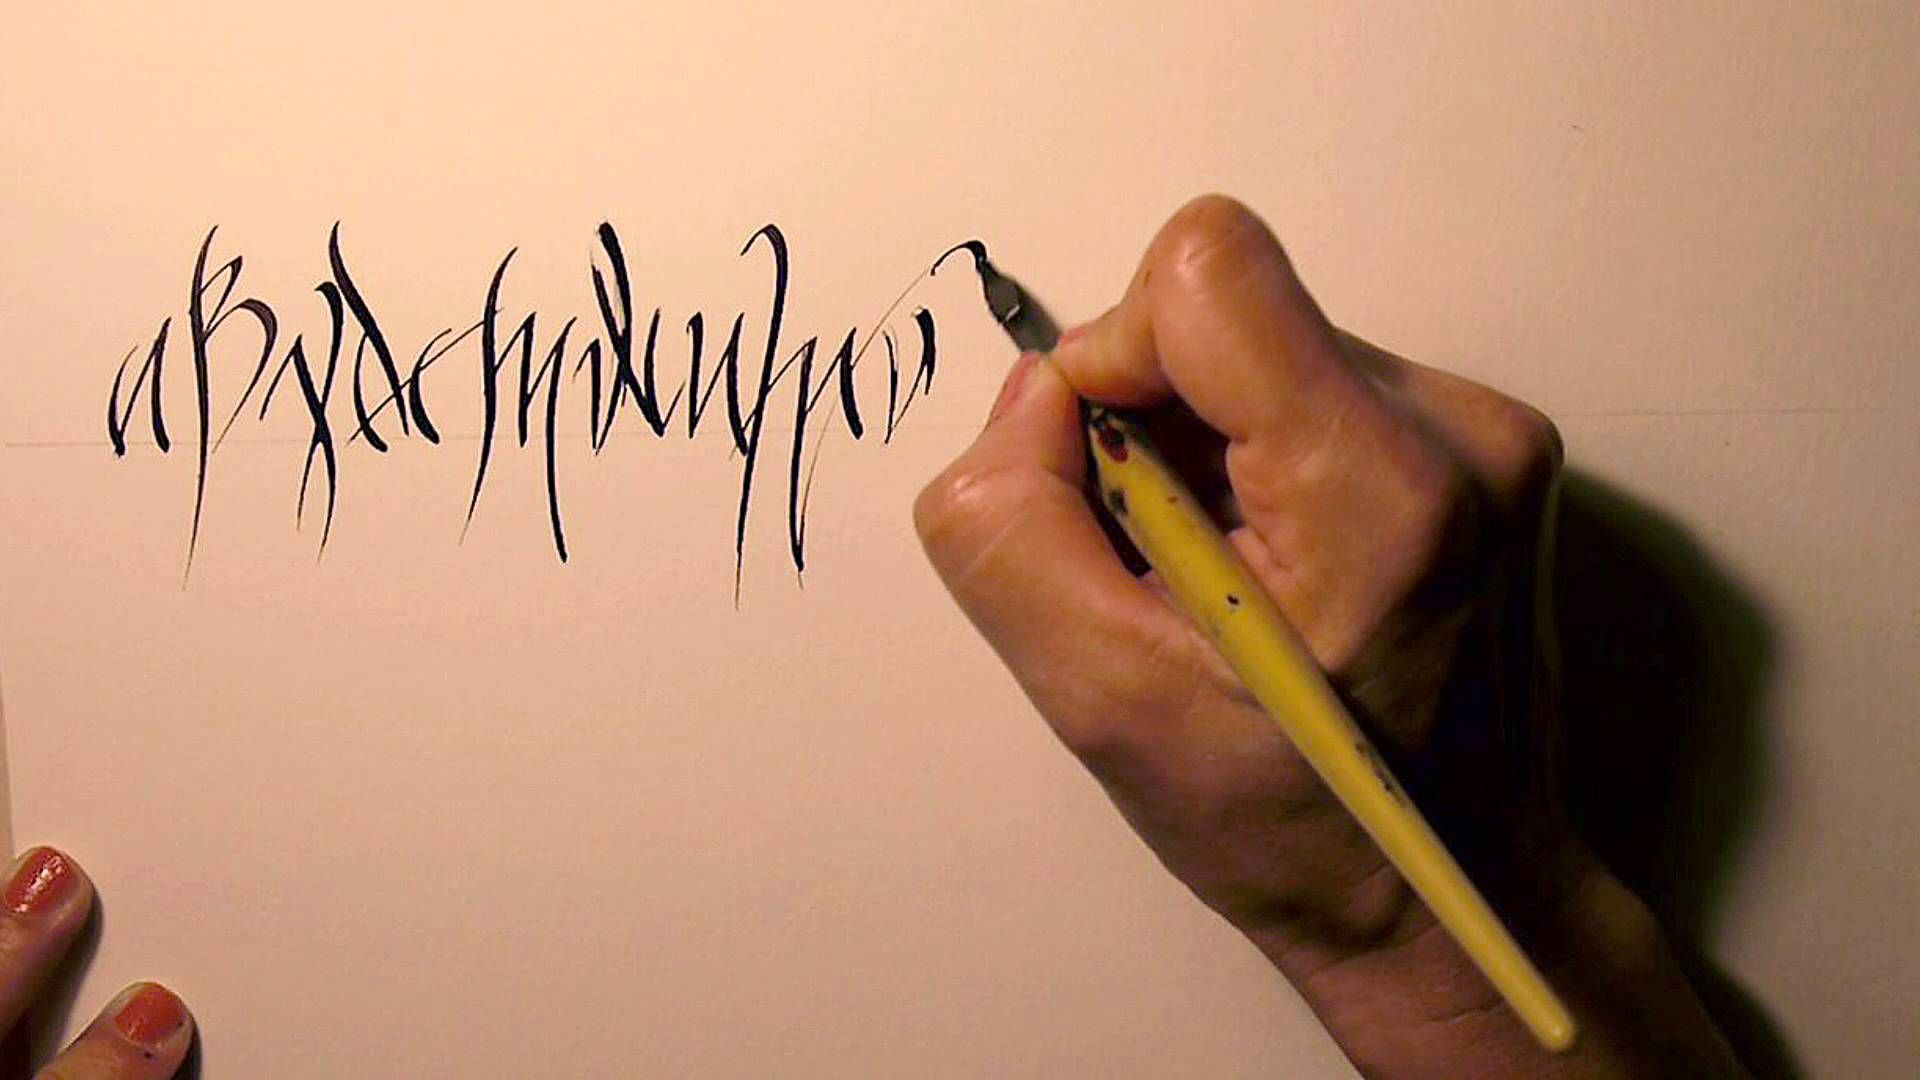 How to write in cursive u cursive fancy letters thank you